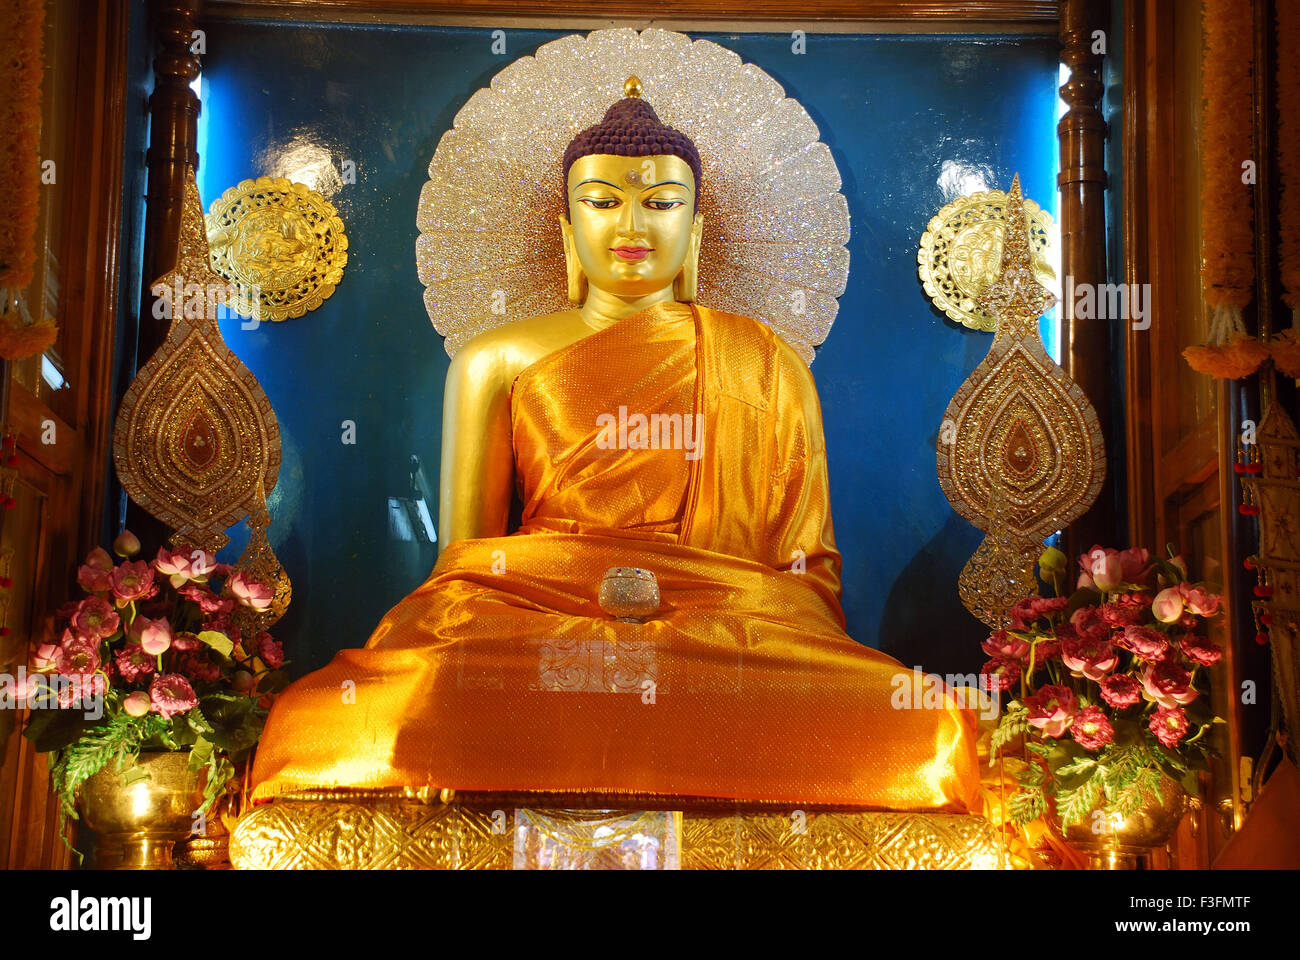 lord buddha golden statue in stock photos lord buddha golden